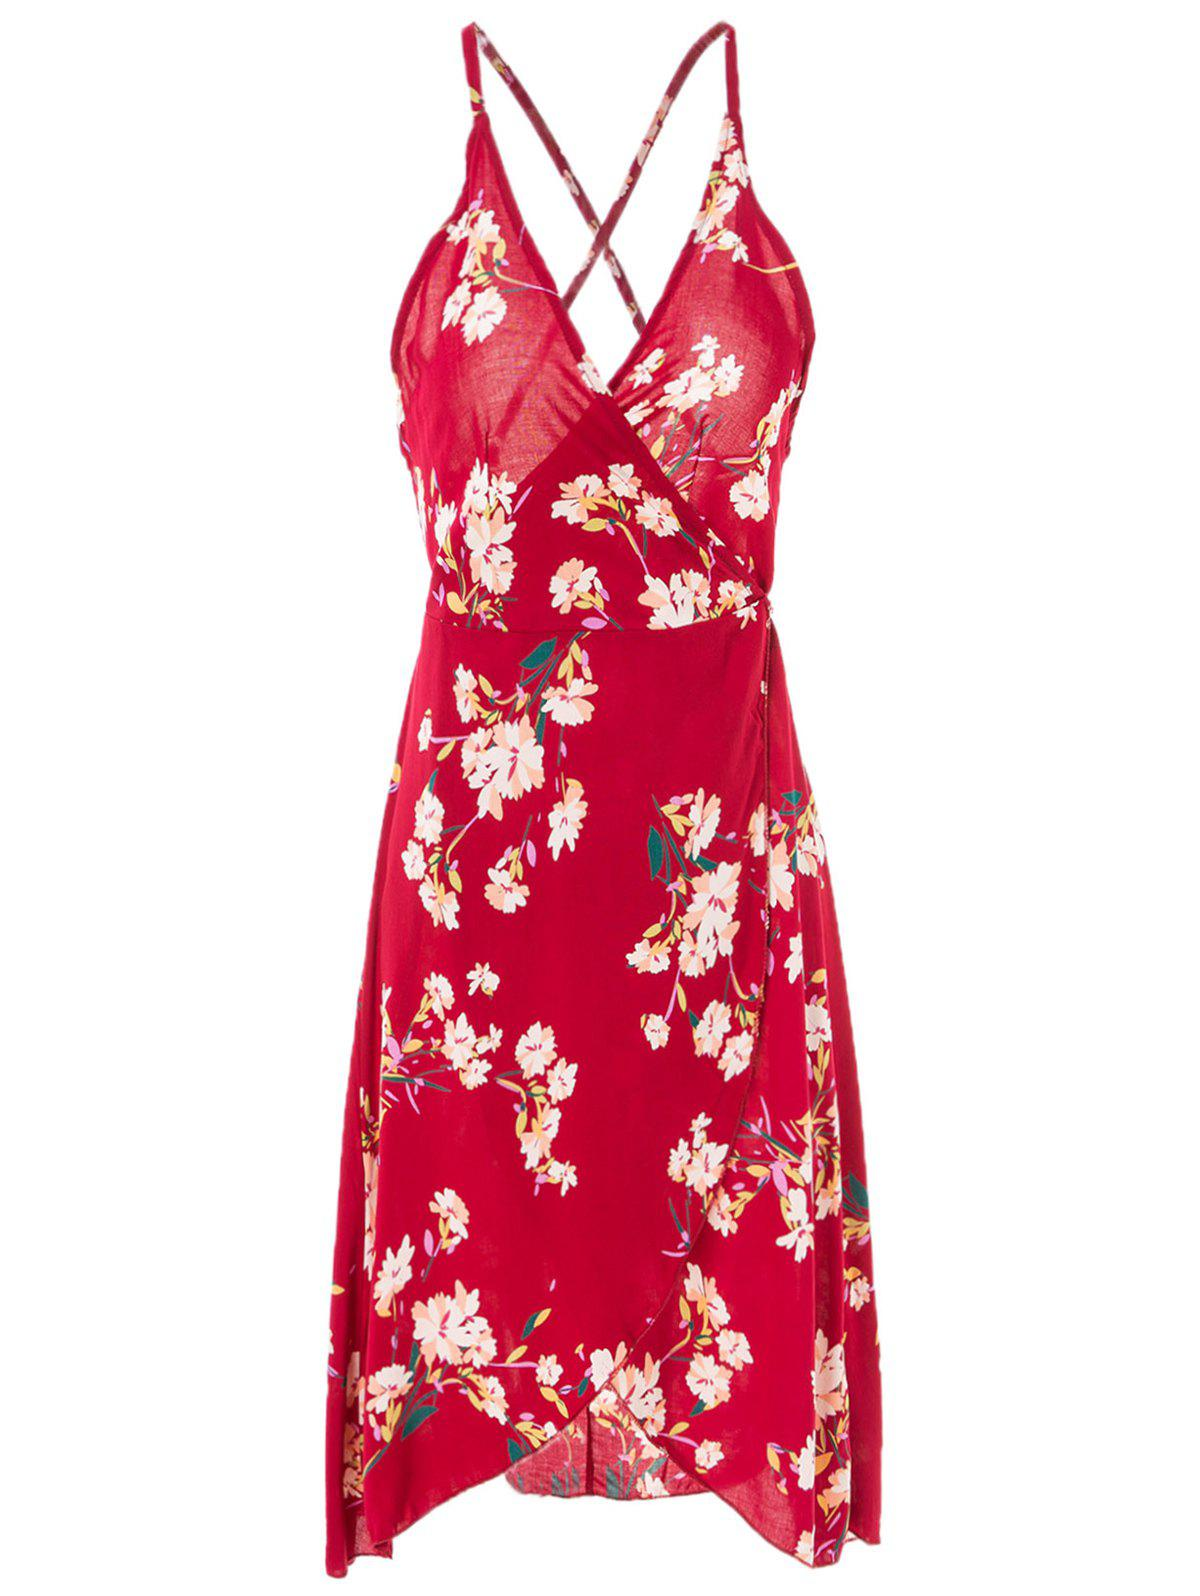 Sexy Women's Spaghetti Strap Floral Print Cross Back Dress